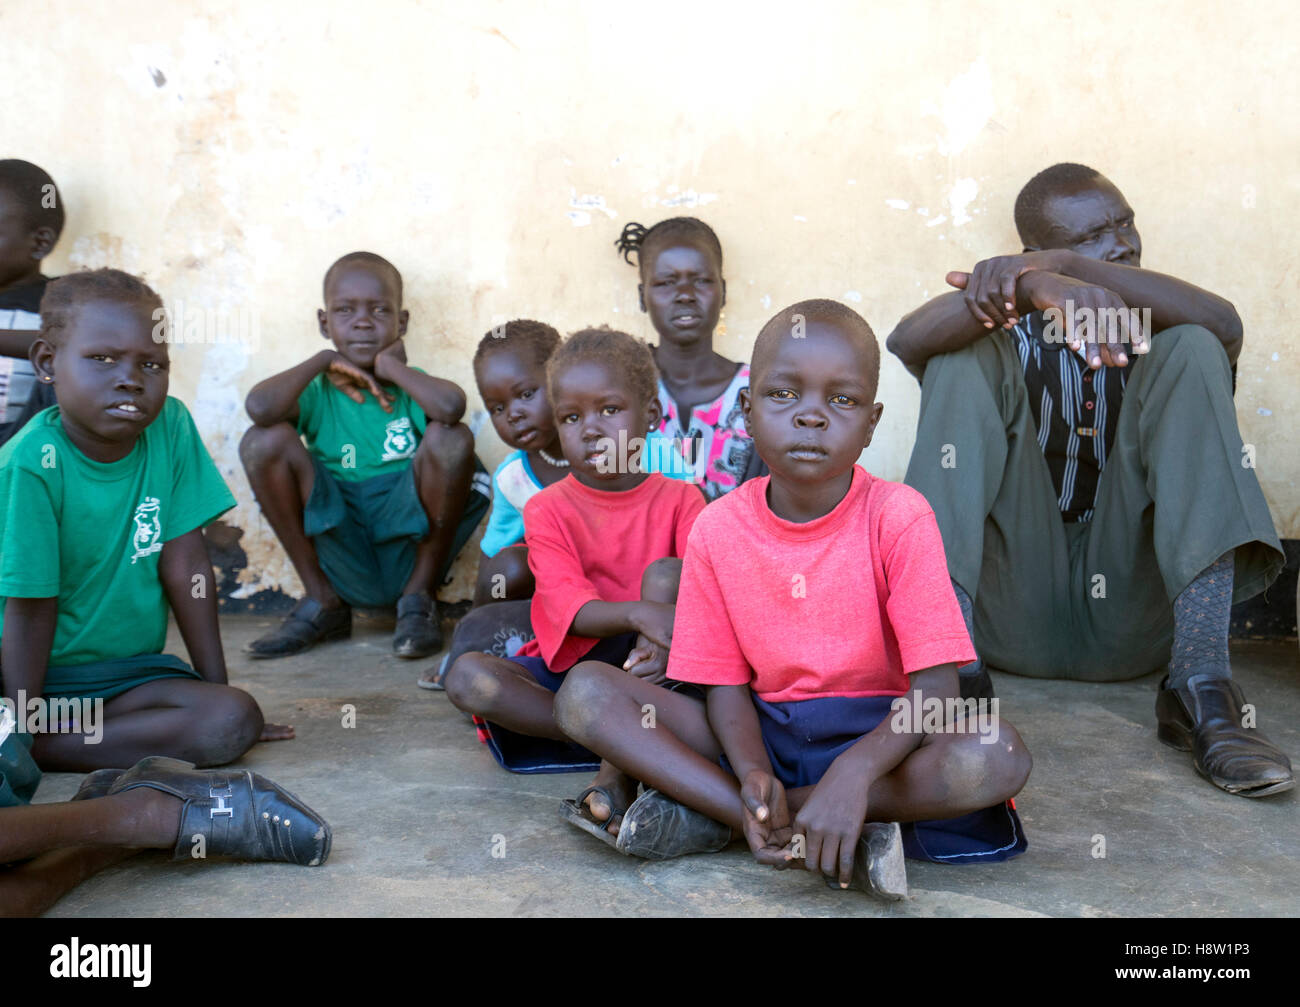 South Sudan - Uganda boarder post. Children from South Sudan waiting to get status as refugees. Nov, 2016 - Stock Image